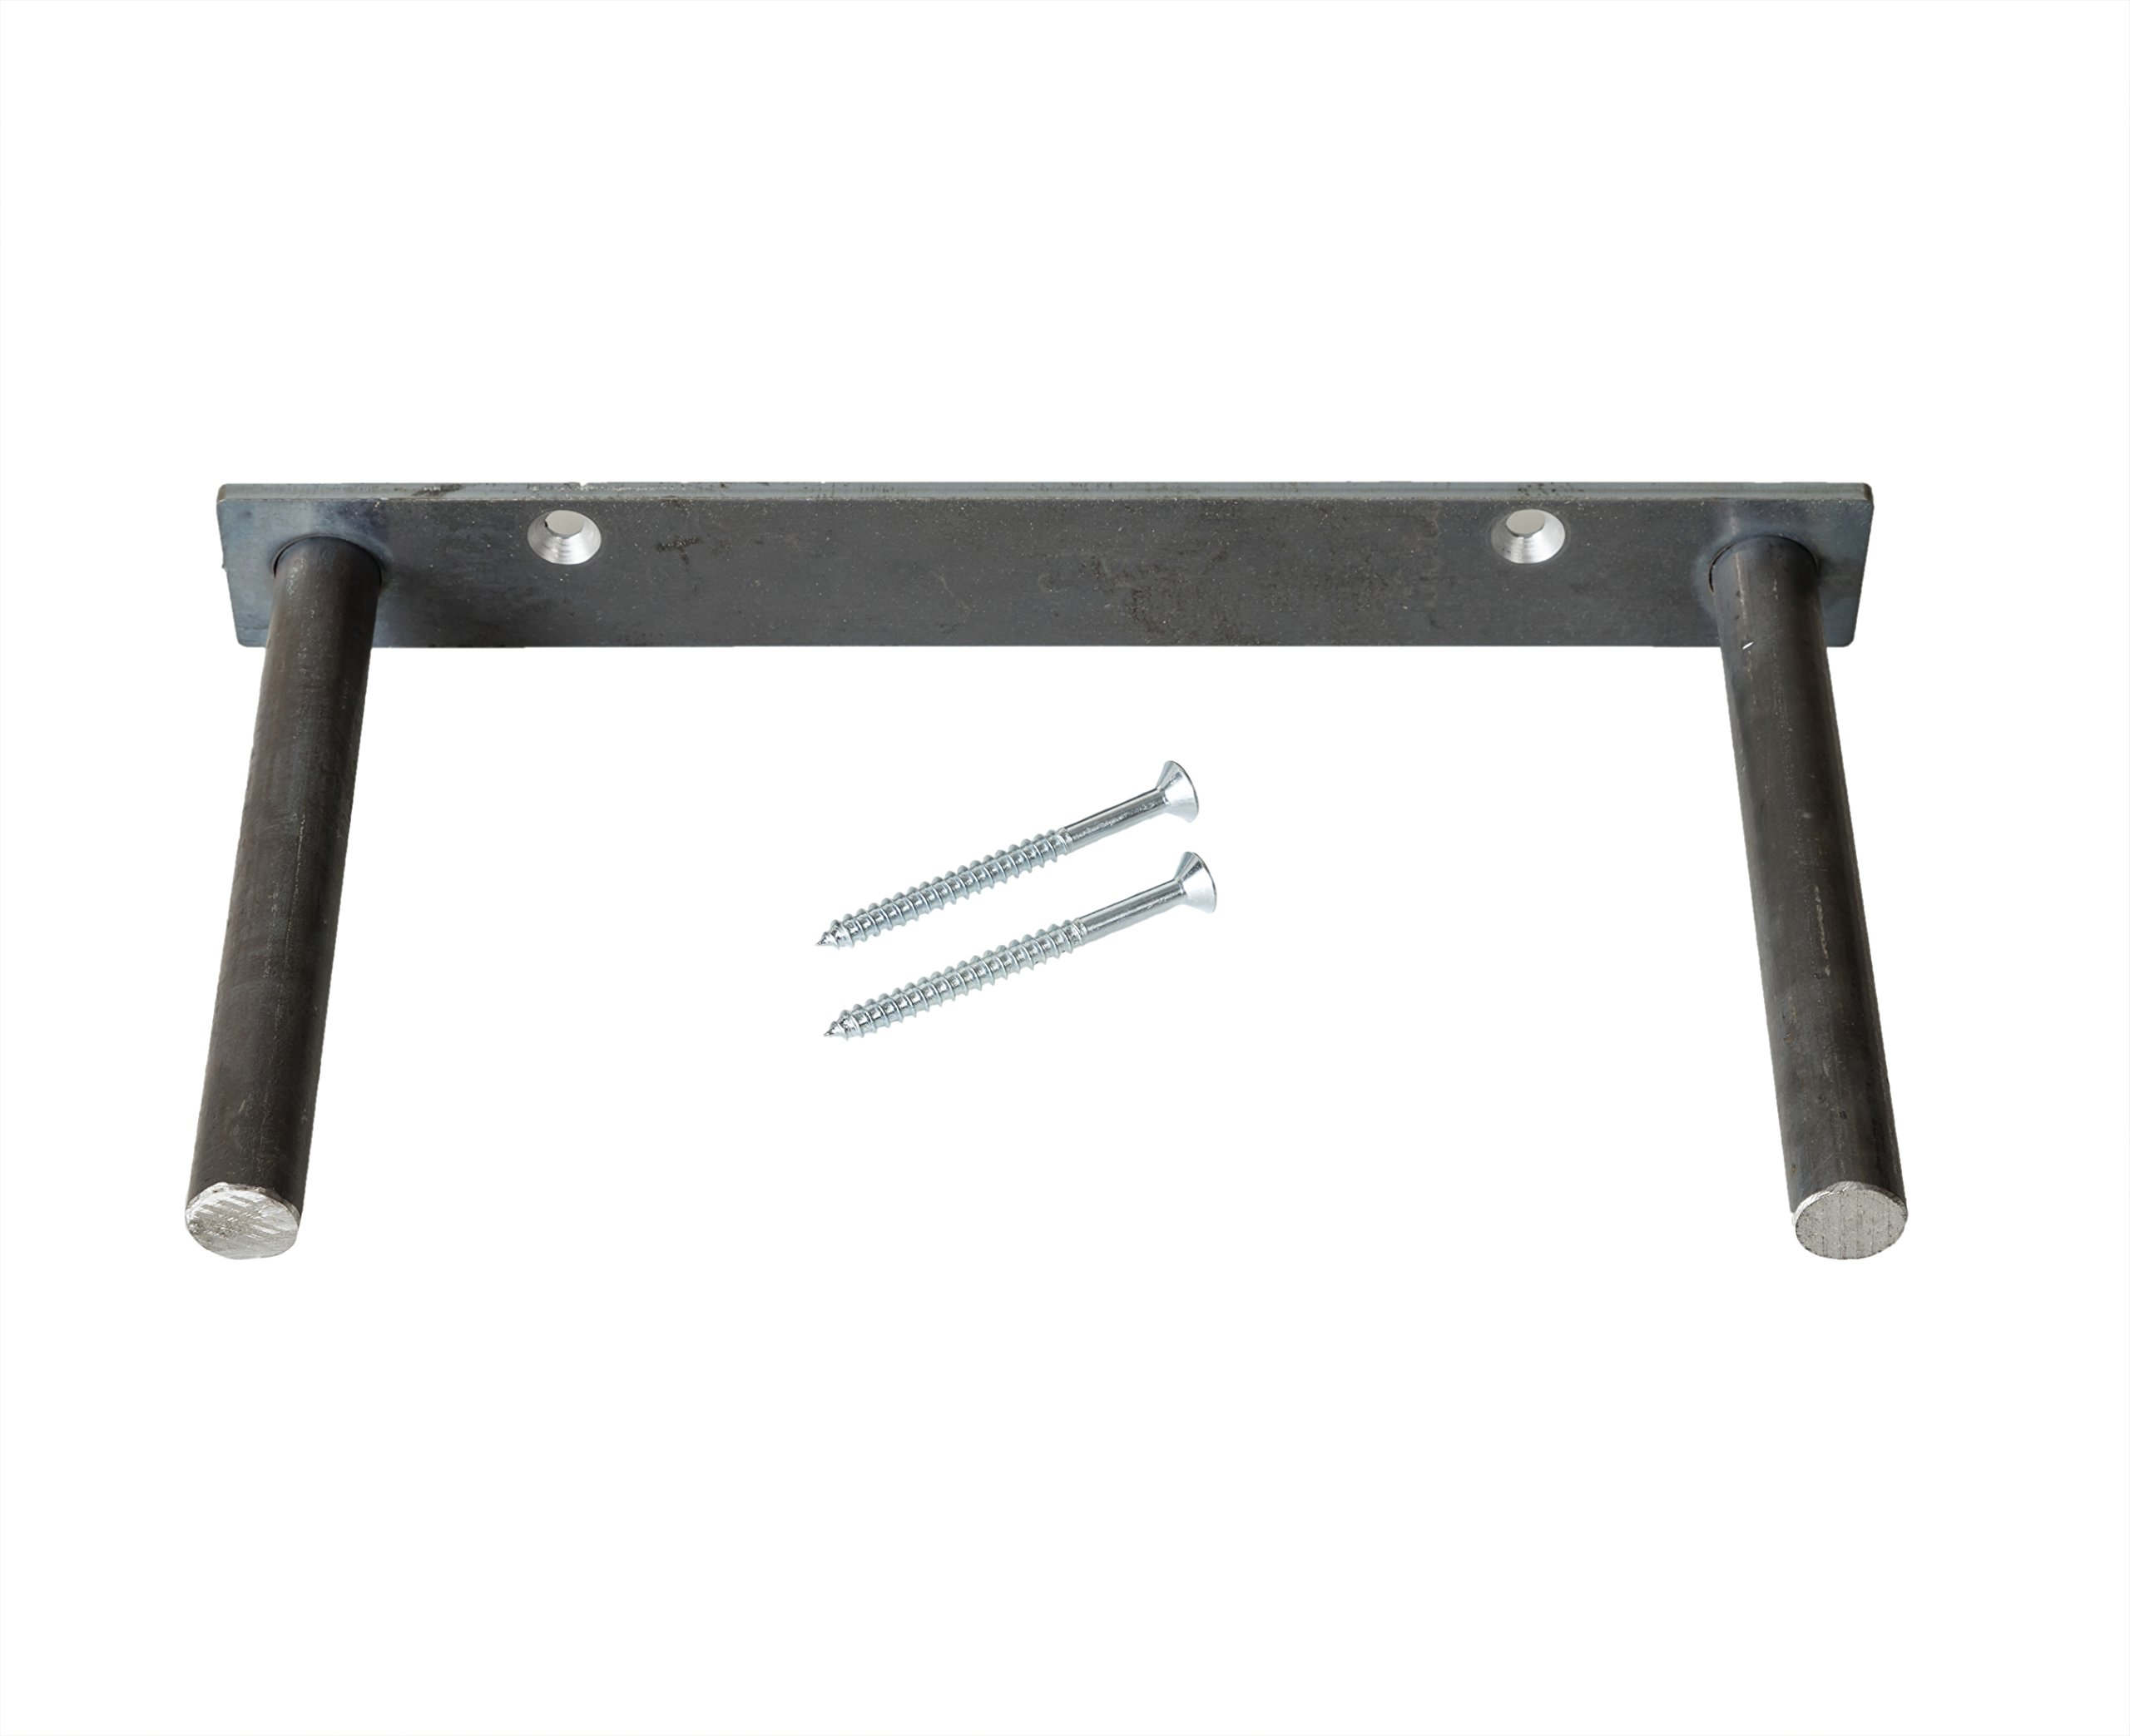 Floating Shelf Bracket - Heavy Duty Solid Steel Mounting Support (12'') Made in The USA